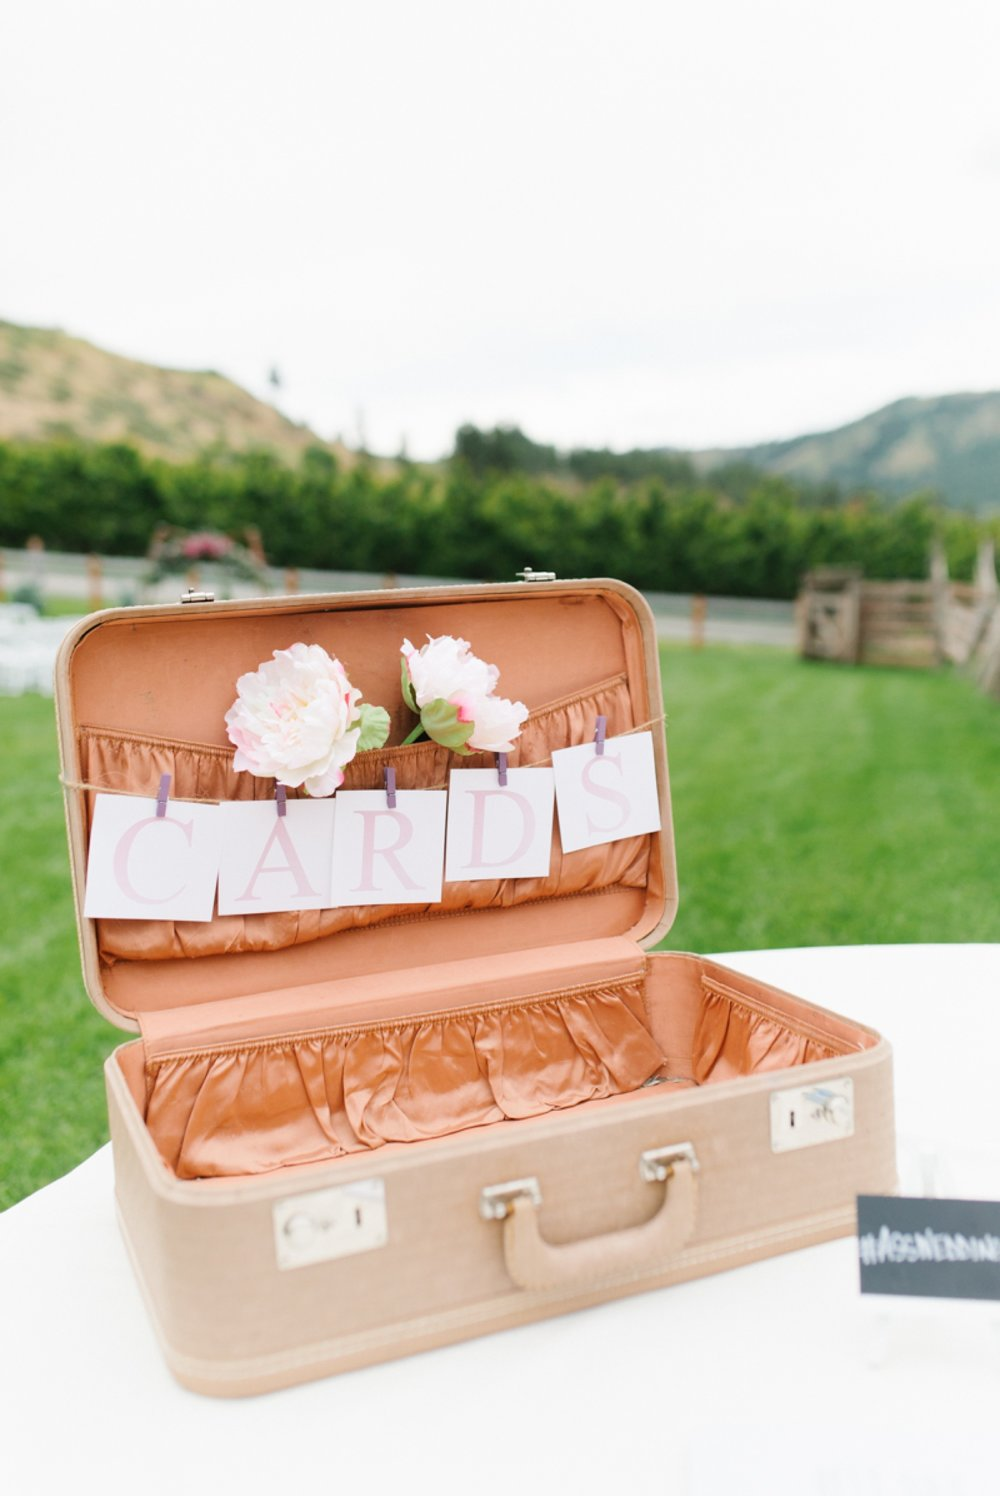 Wenatchee Wedding Photographer | Hampton Hideaway | Summer Rustic Wedding Eastern Washington | Emma Rose Company | Pastel Wedding Inspiration | Lace Wedding | Pacific Northwest Wedding 62.jpg